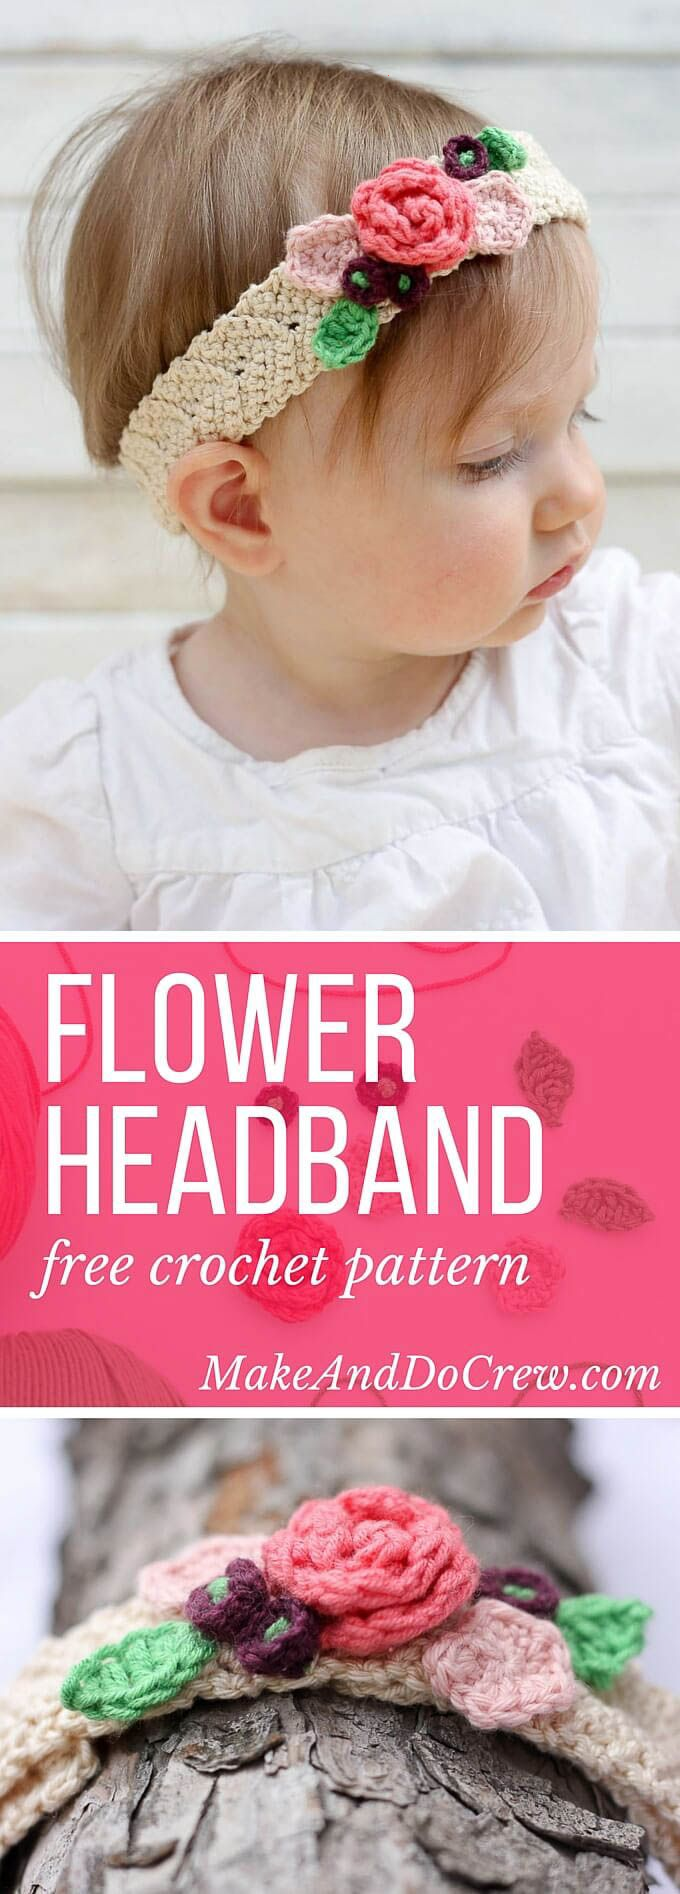 Free Crochet Flower Headband Pattern (Baby, Toddler, Adult)